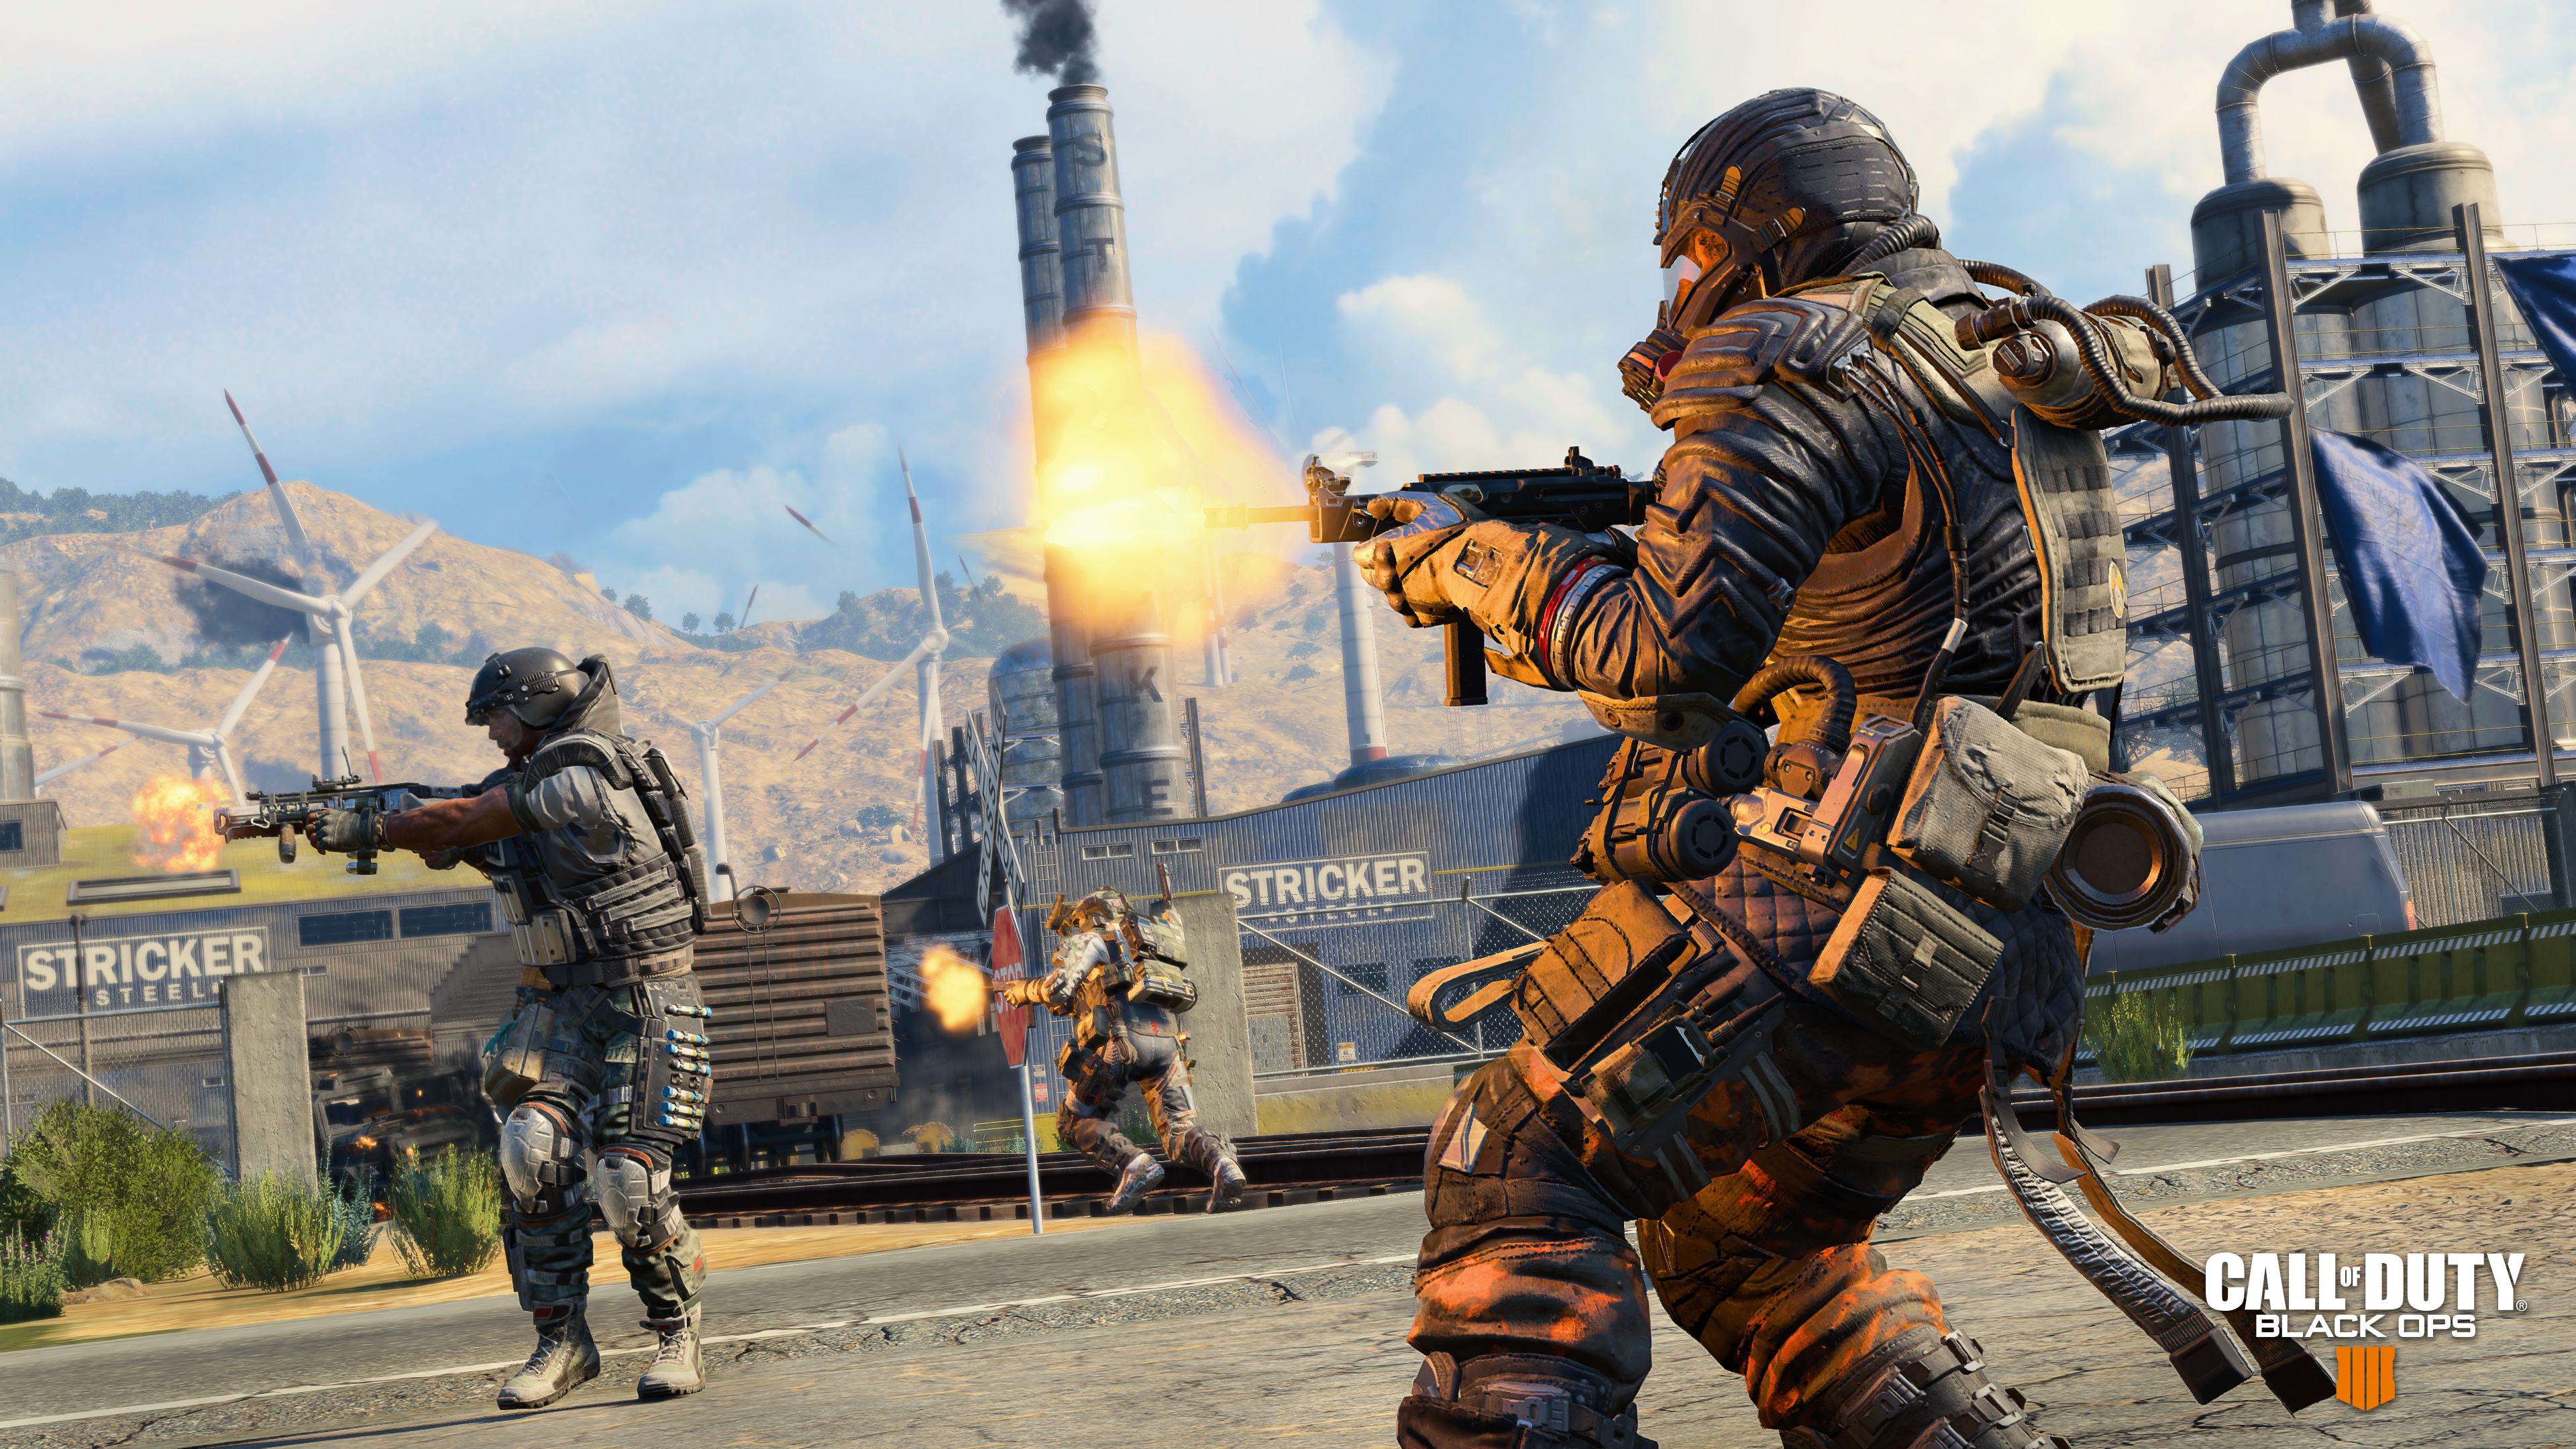 Call Of Duty Black Ops 4 Review War Games Now With Battle Royale